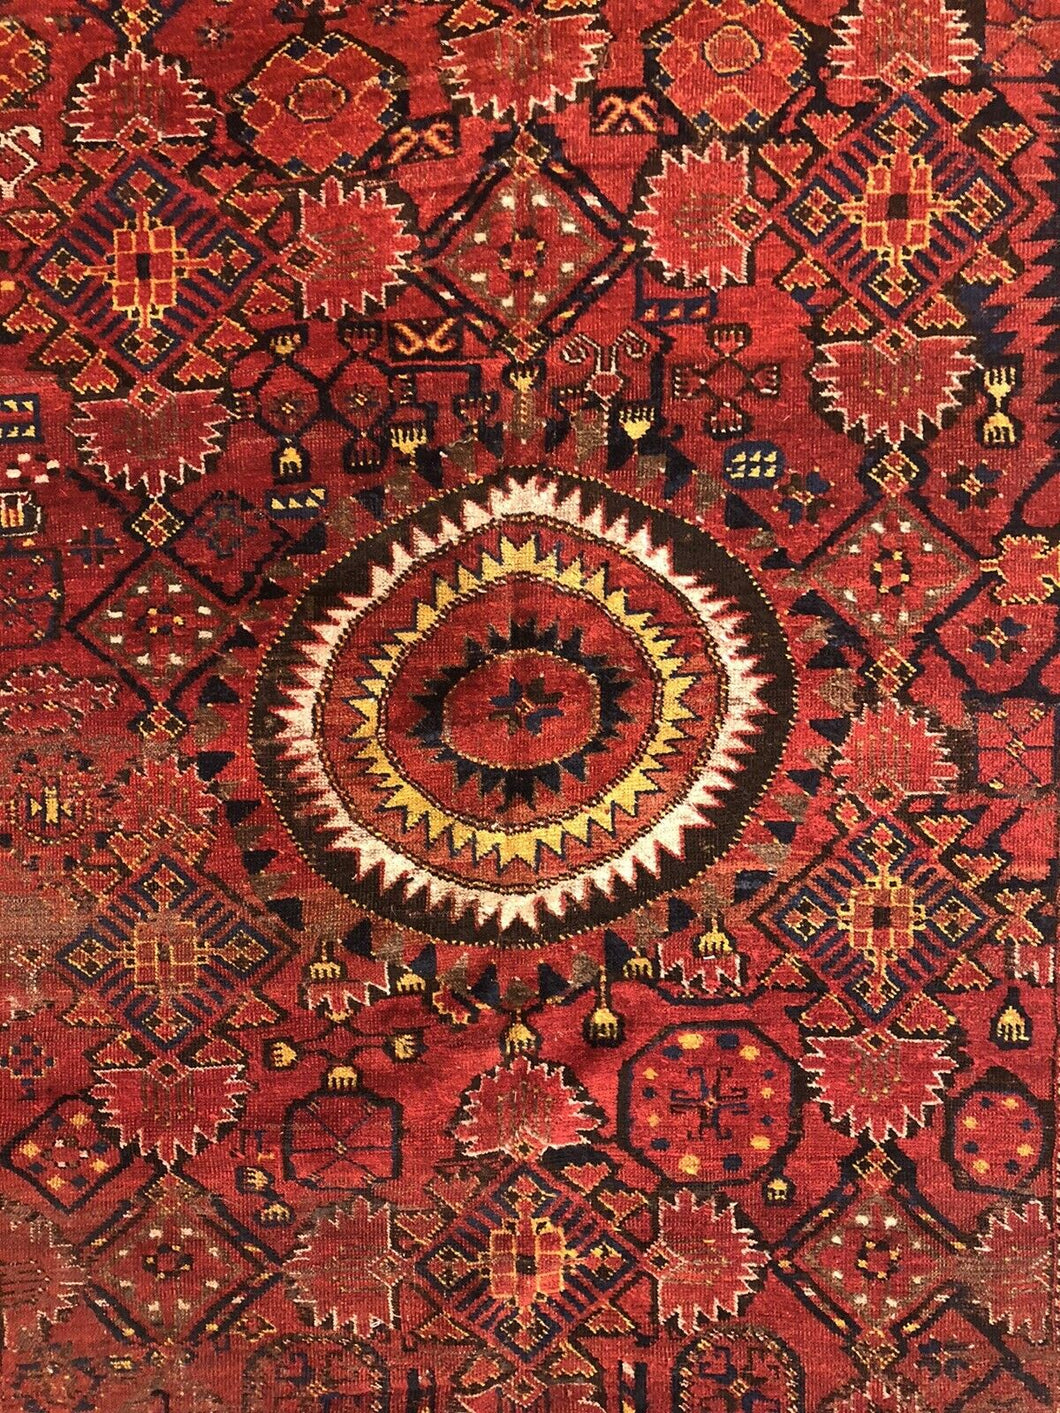 Amazing Afghan Rug - 1880s Antique Turkmen Rug - Tribal Gallery 6'3